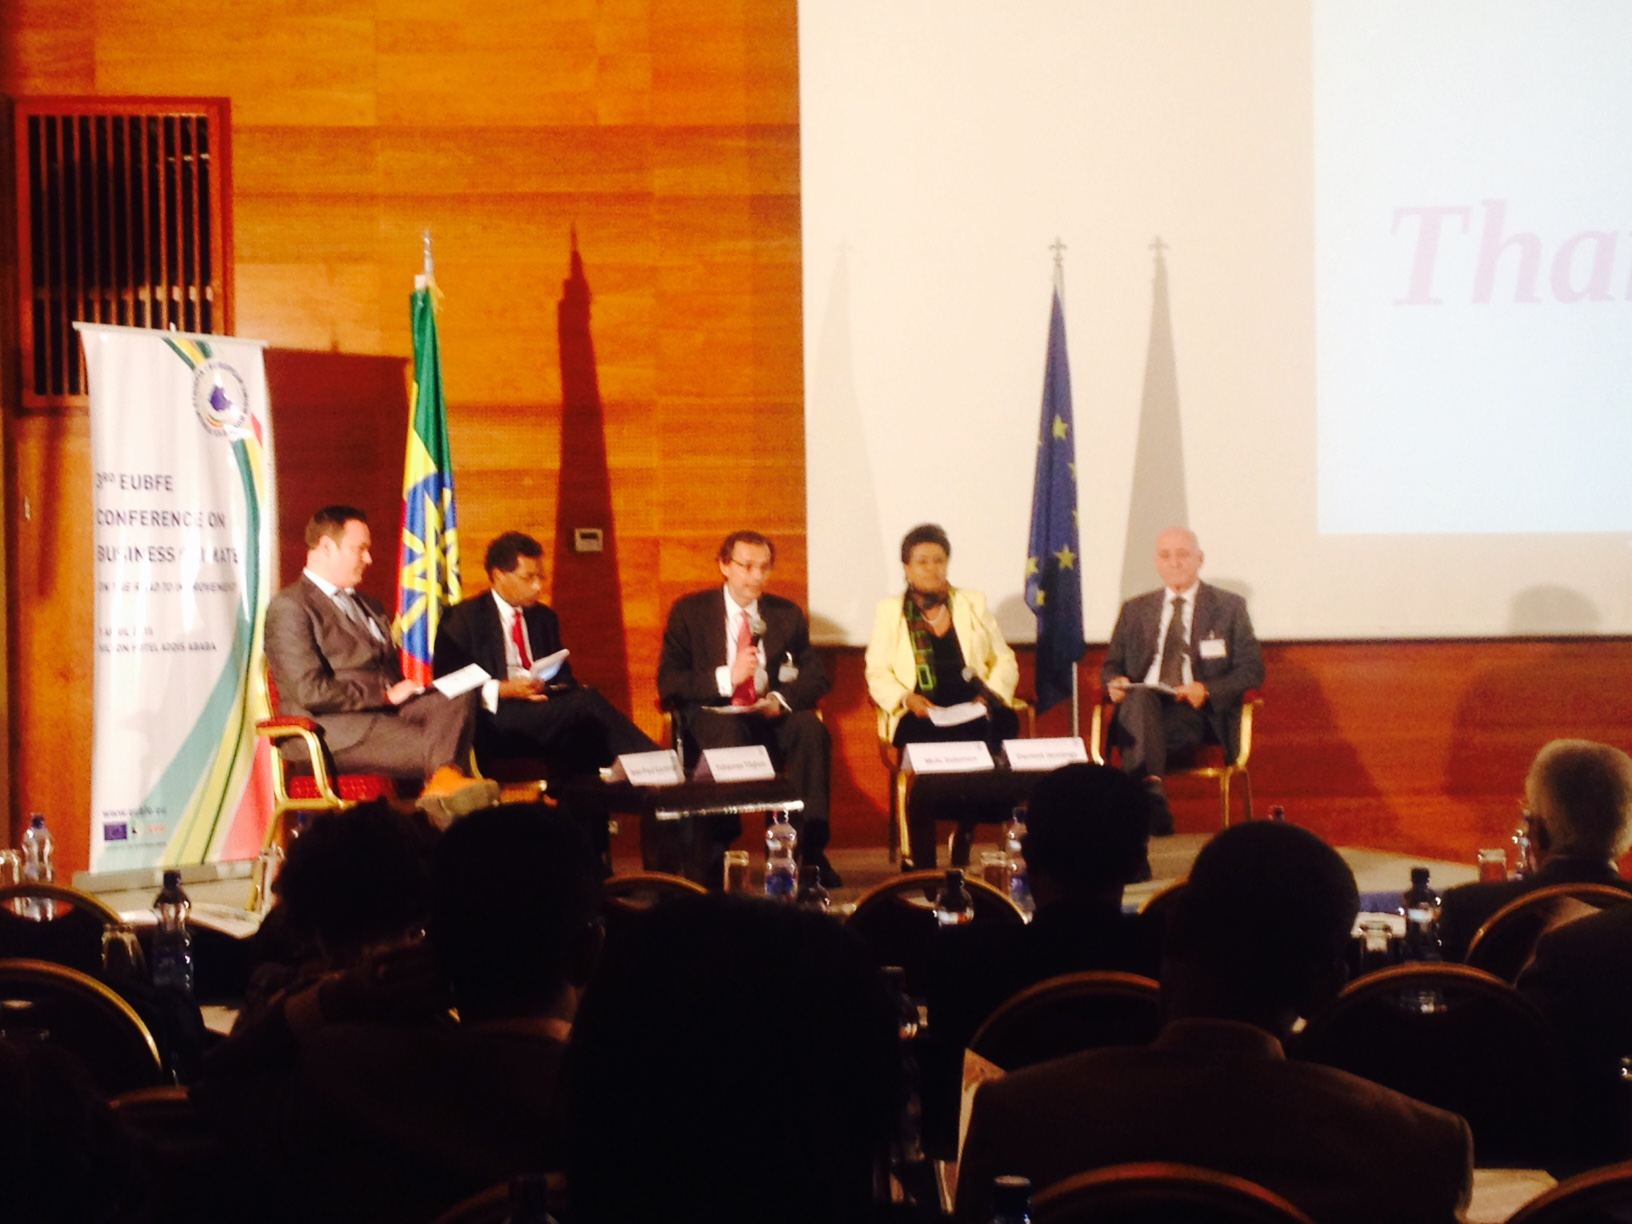 Jean-Paul Gauthier participating in a panel discussion at the EU Business Forum conference in Addis Ababa